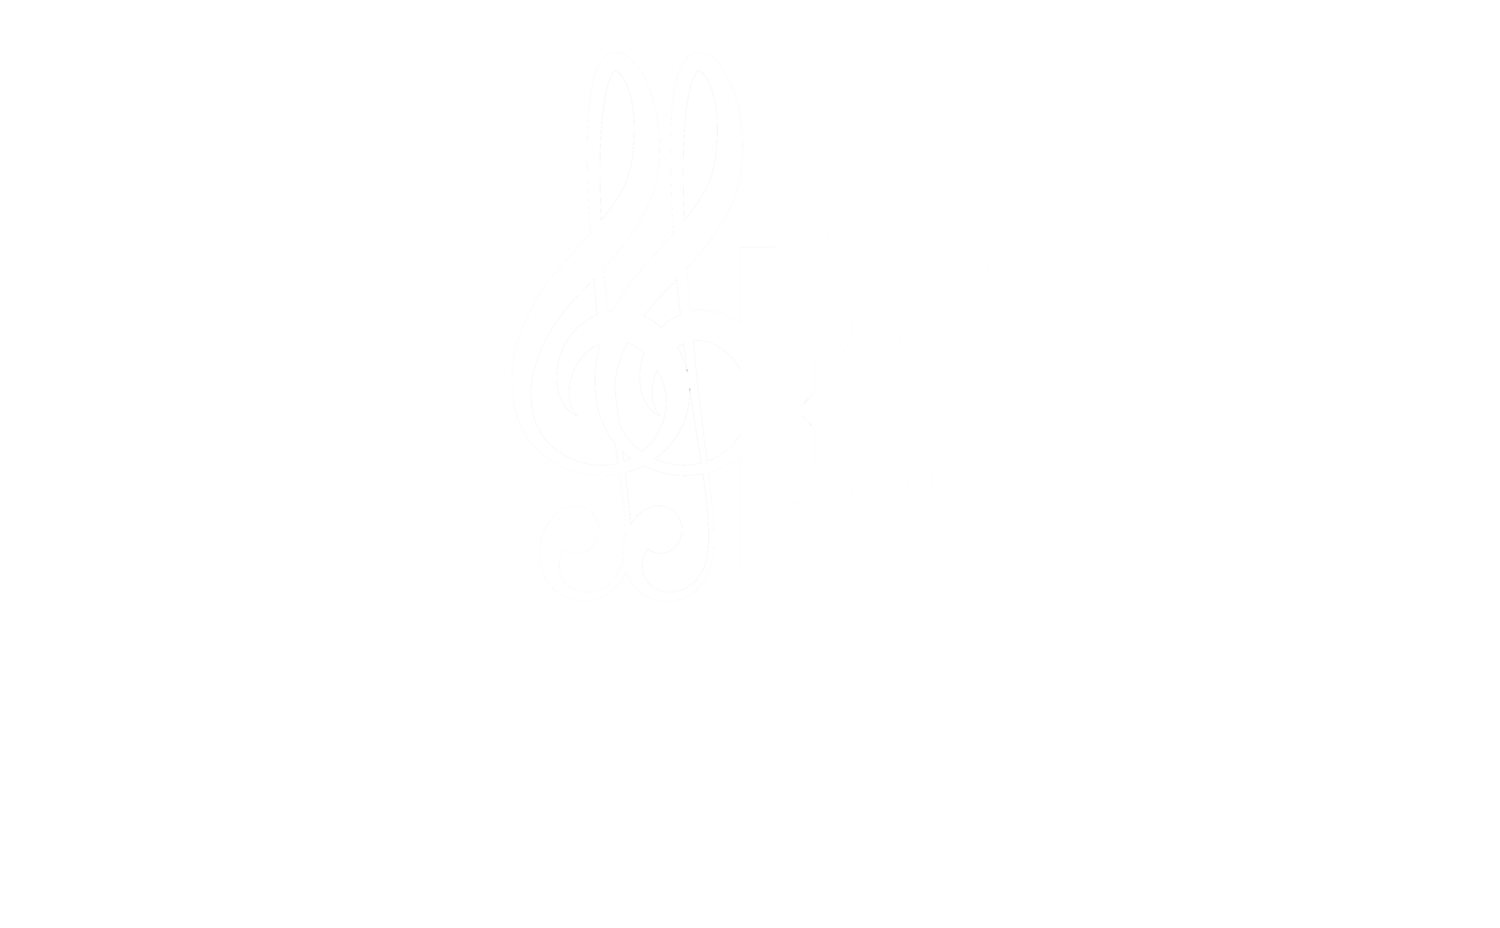 The Southeast Iowa Symphony Orchestra